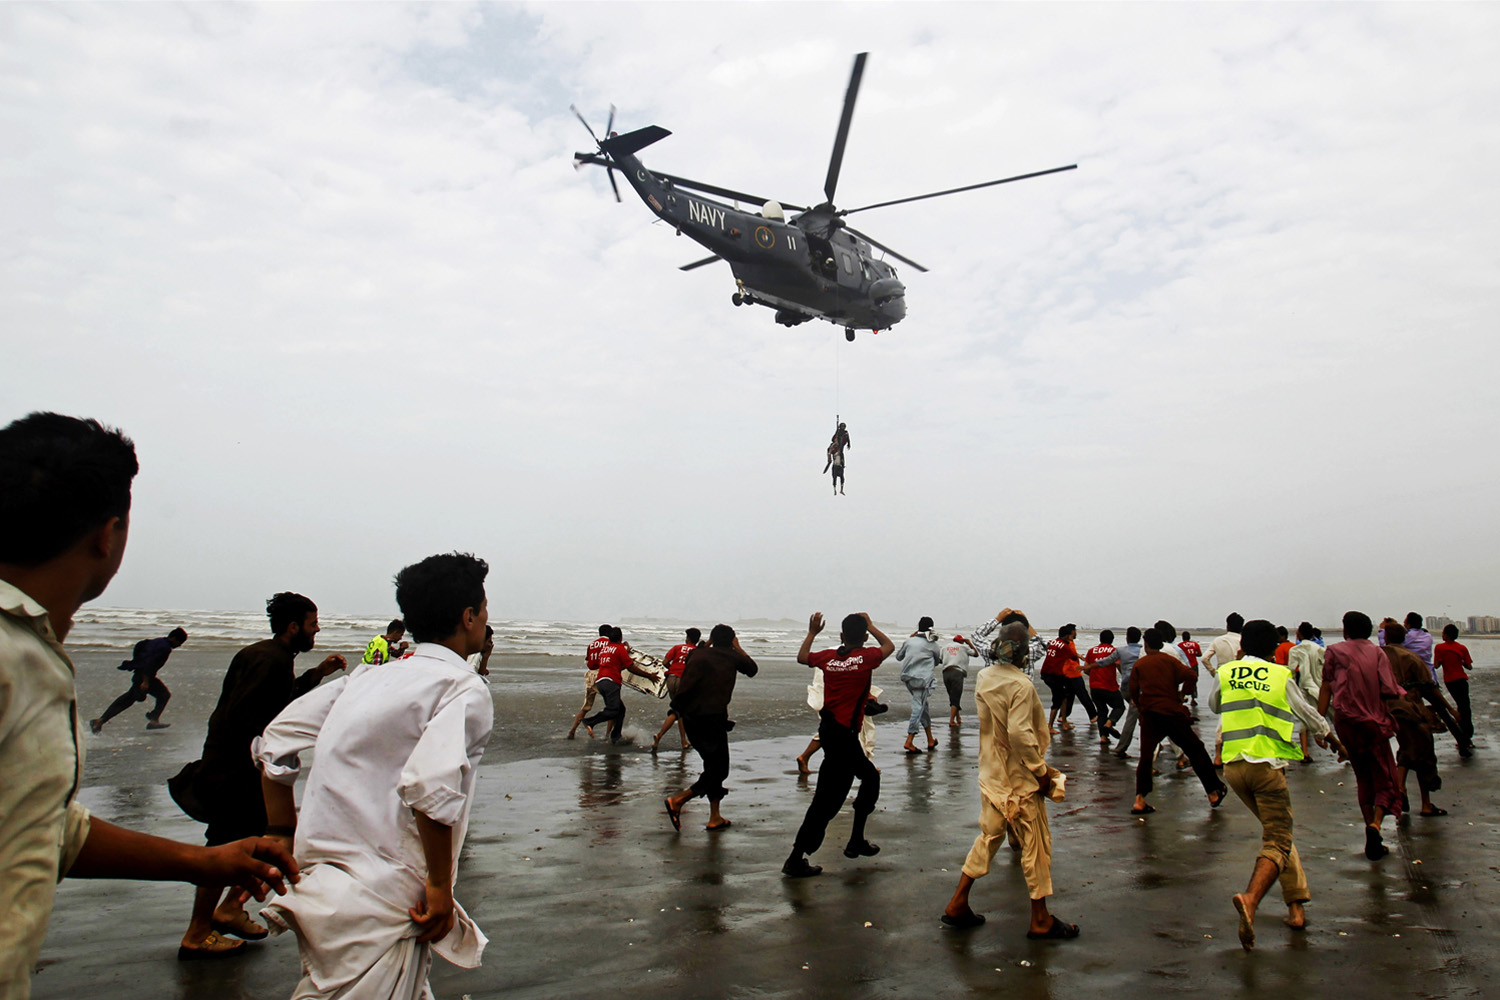 Jul. 31, 2014. A Pakistan Navy helicopter evacuates a recovered body of a victim who drowned over Clifton beach in Karachi, Pakistan. Scores of people drowned despite a ban on entering and bathing in the sea due to high tides, after thousands of people turned up on various beaches of Karachi to celebrate Muslims festive day of Eid.